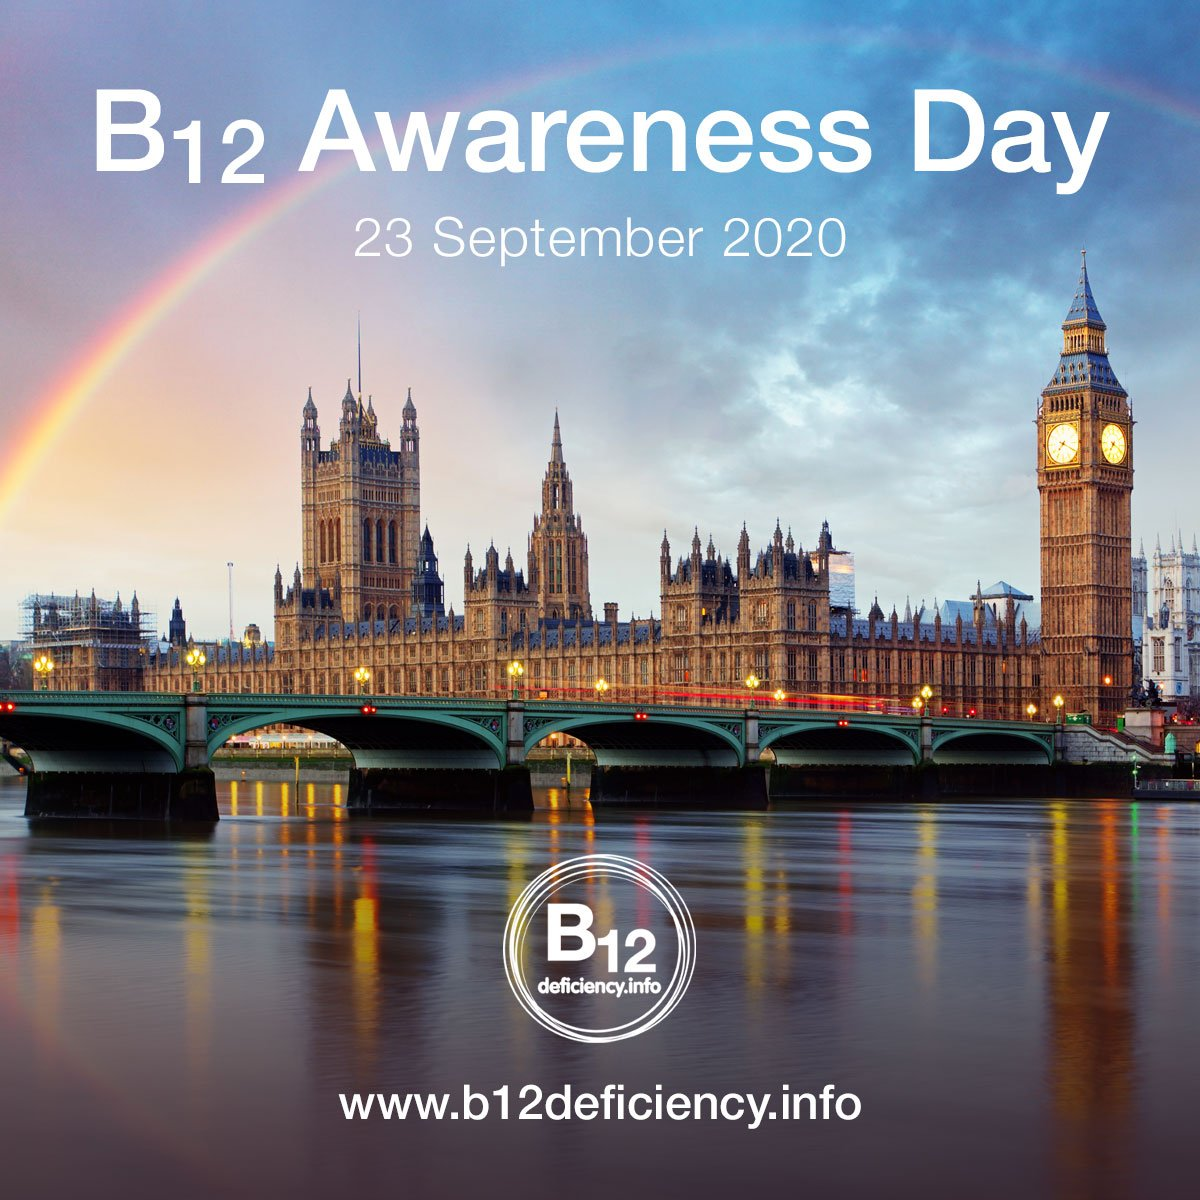 B12 Awareness Day 2020 In the House of Commons